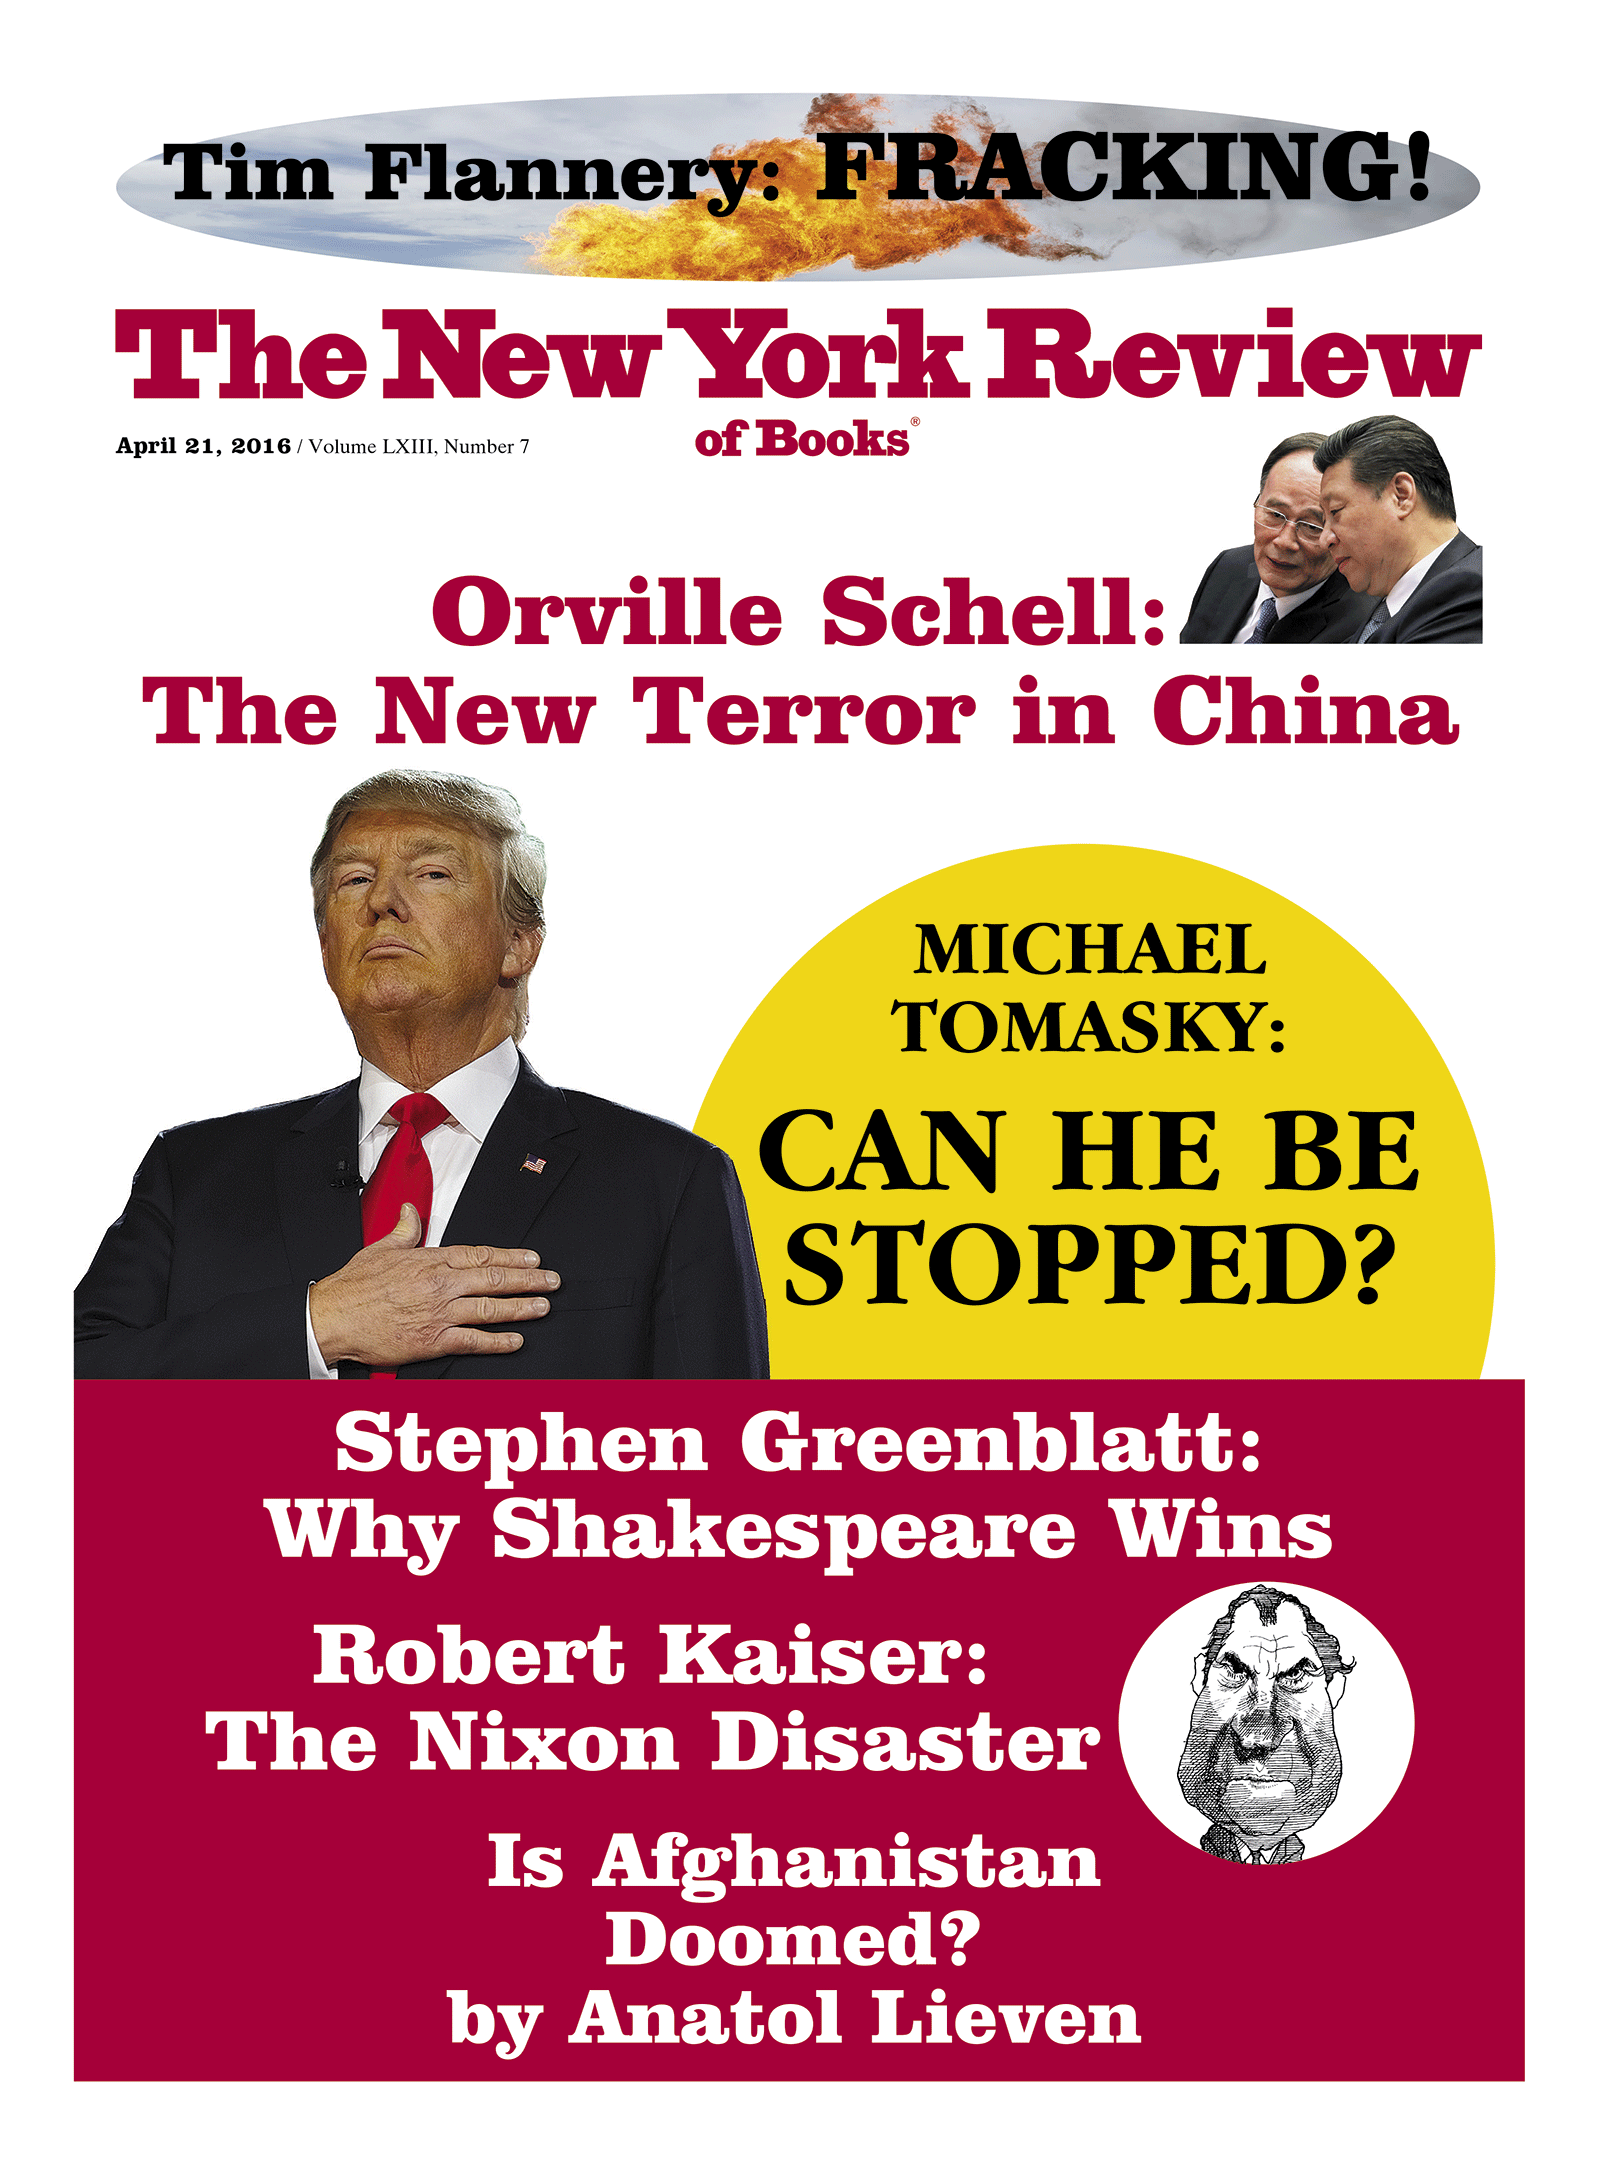 Image of the April 21, 2016 issue cover.